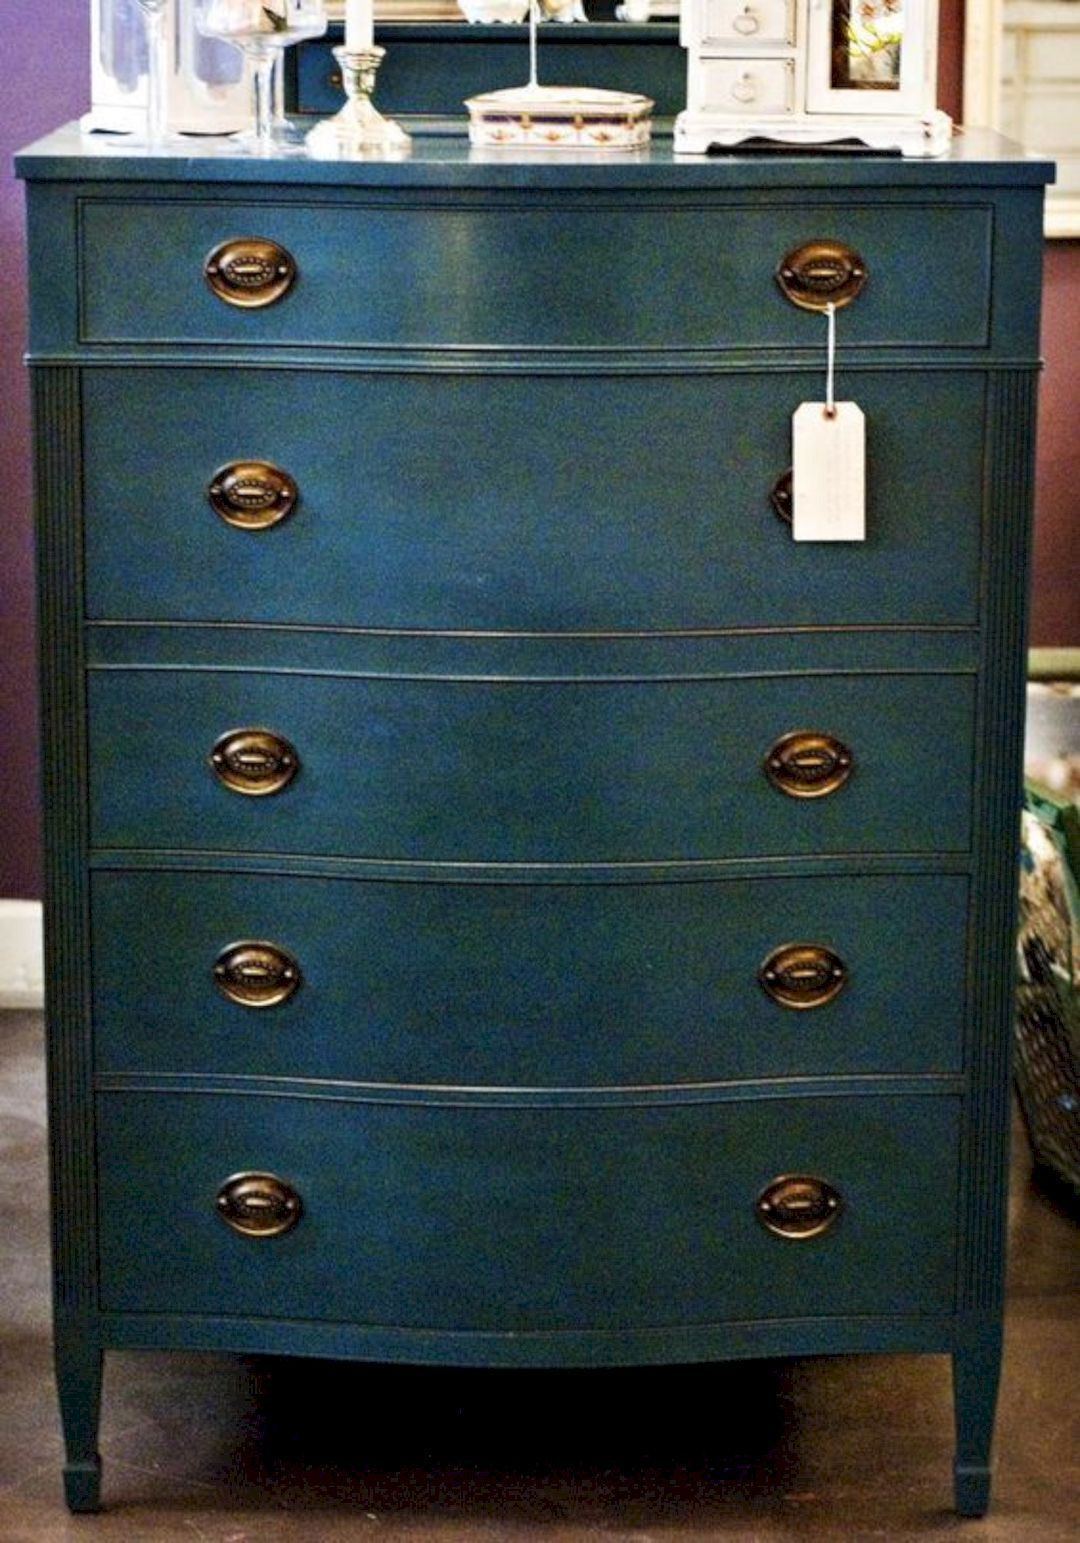 Best ideas about Chalk Painted Furniture Ideas . Save or Pin 16 Chalk Paint Furniture Ideas Futurist Architecture Now.